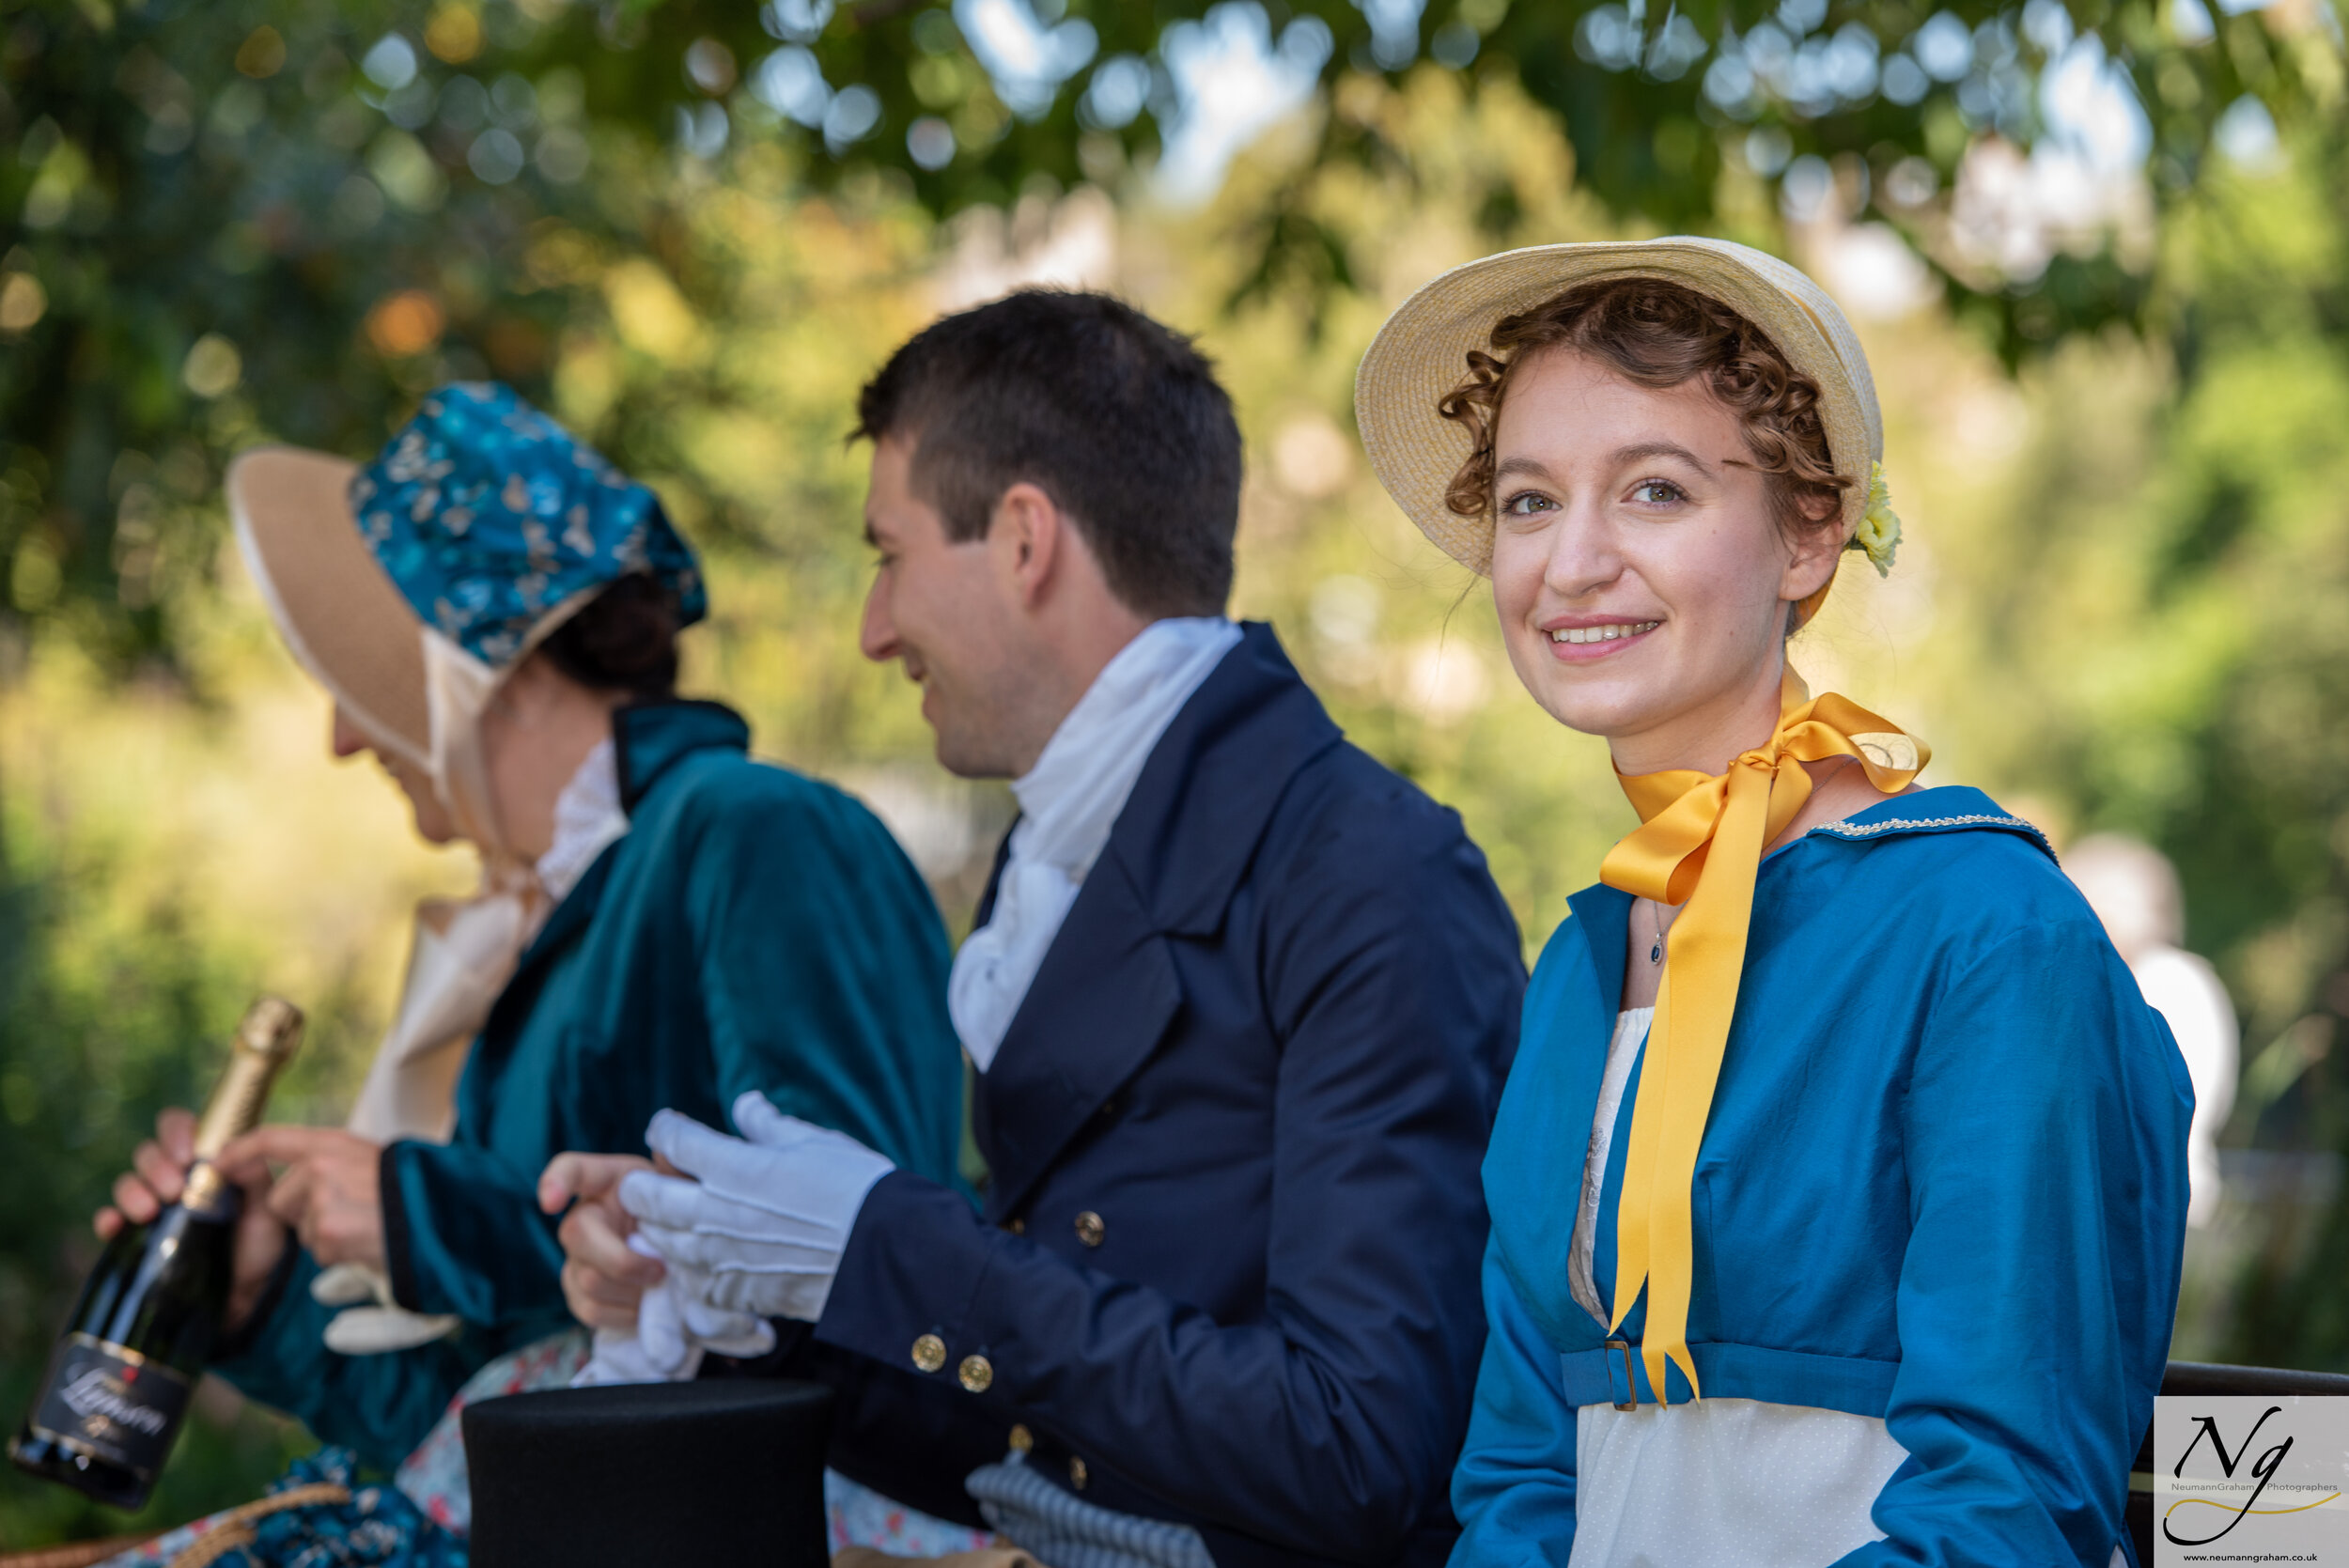 Event_20190914_Jane_Austen_Parade-35.jpg